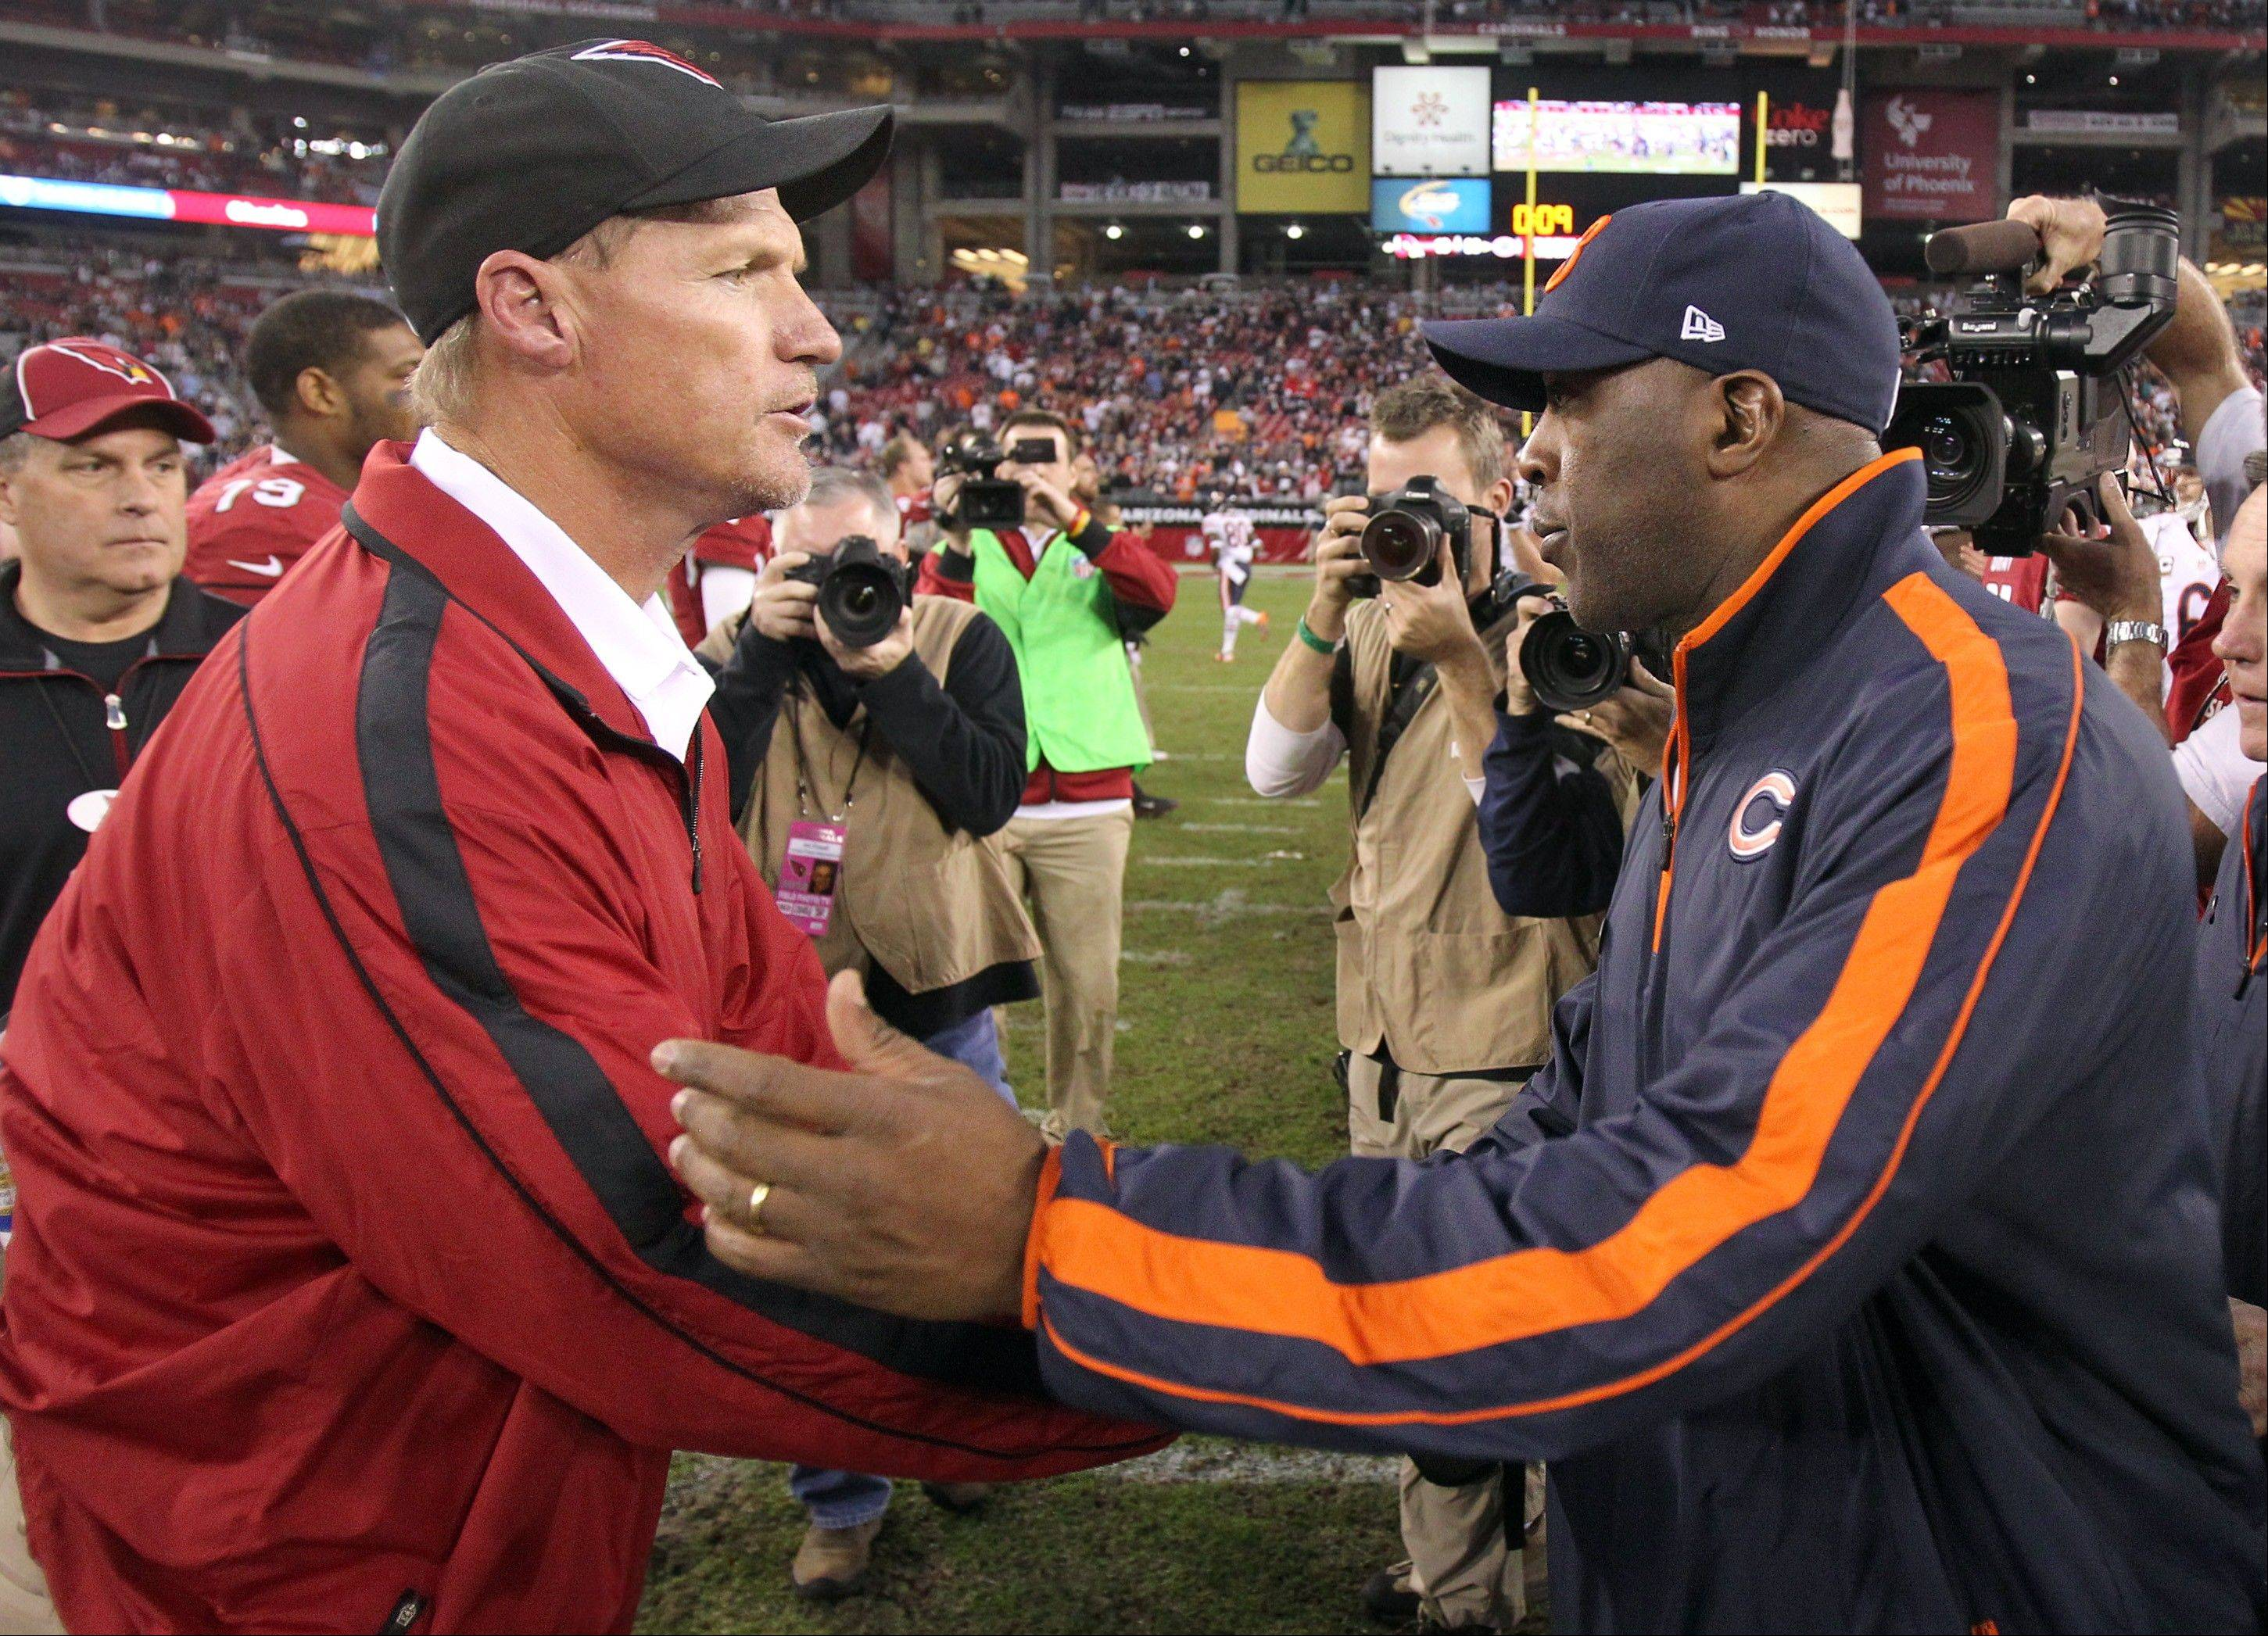 Bears coach Lovie Smith, right, was more than happy to receive the gifts provided by coach Ken Whisenhunt�s Cardinals team Sunday in Arizona.